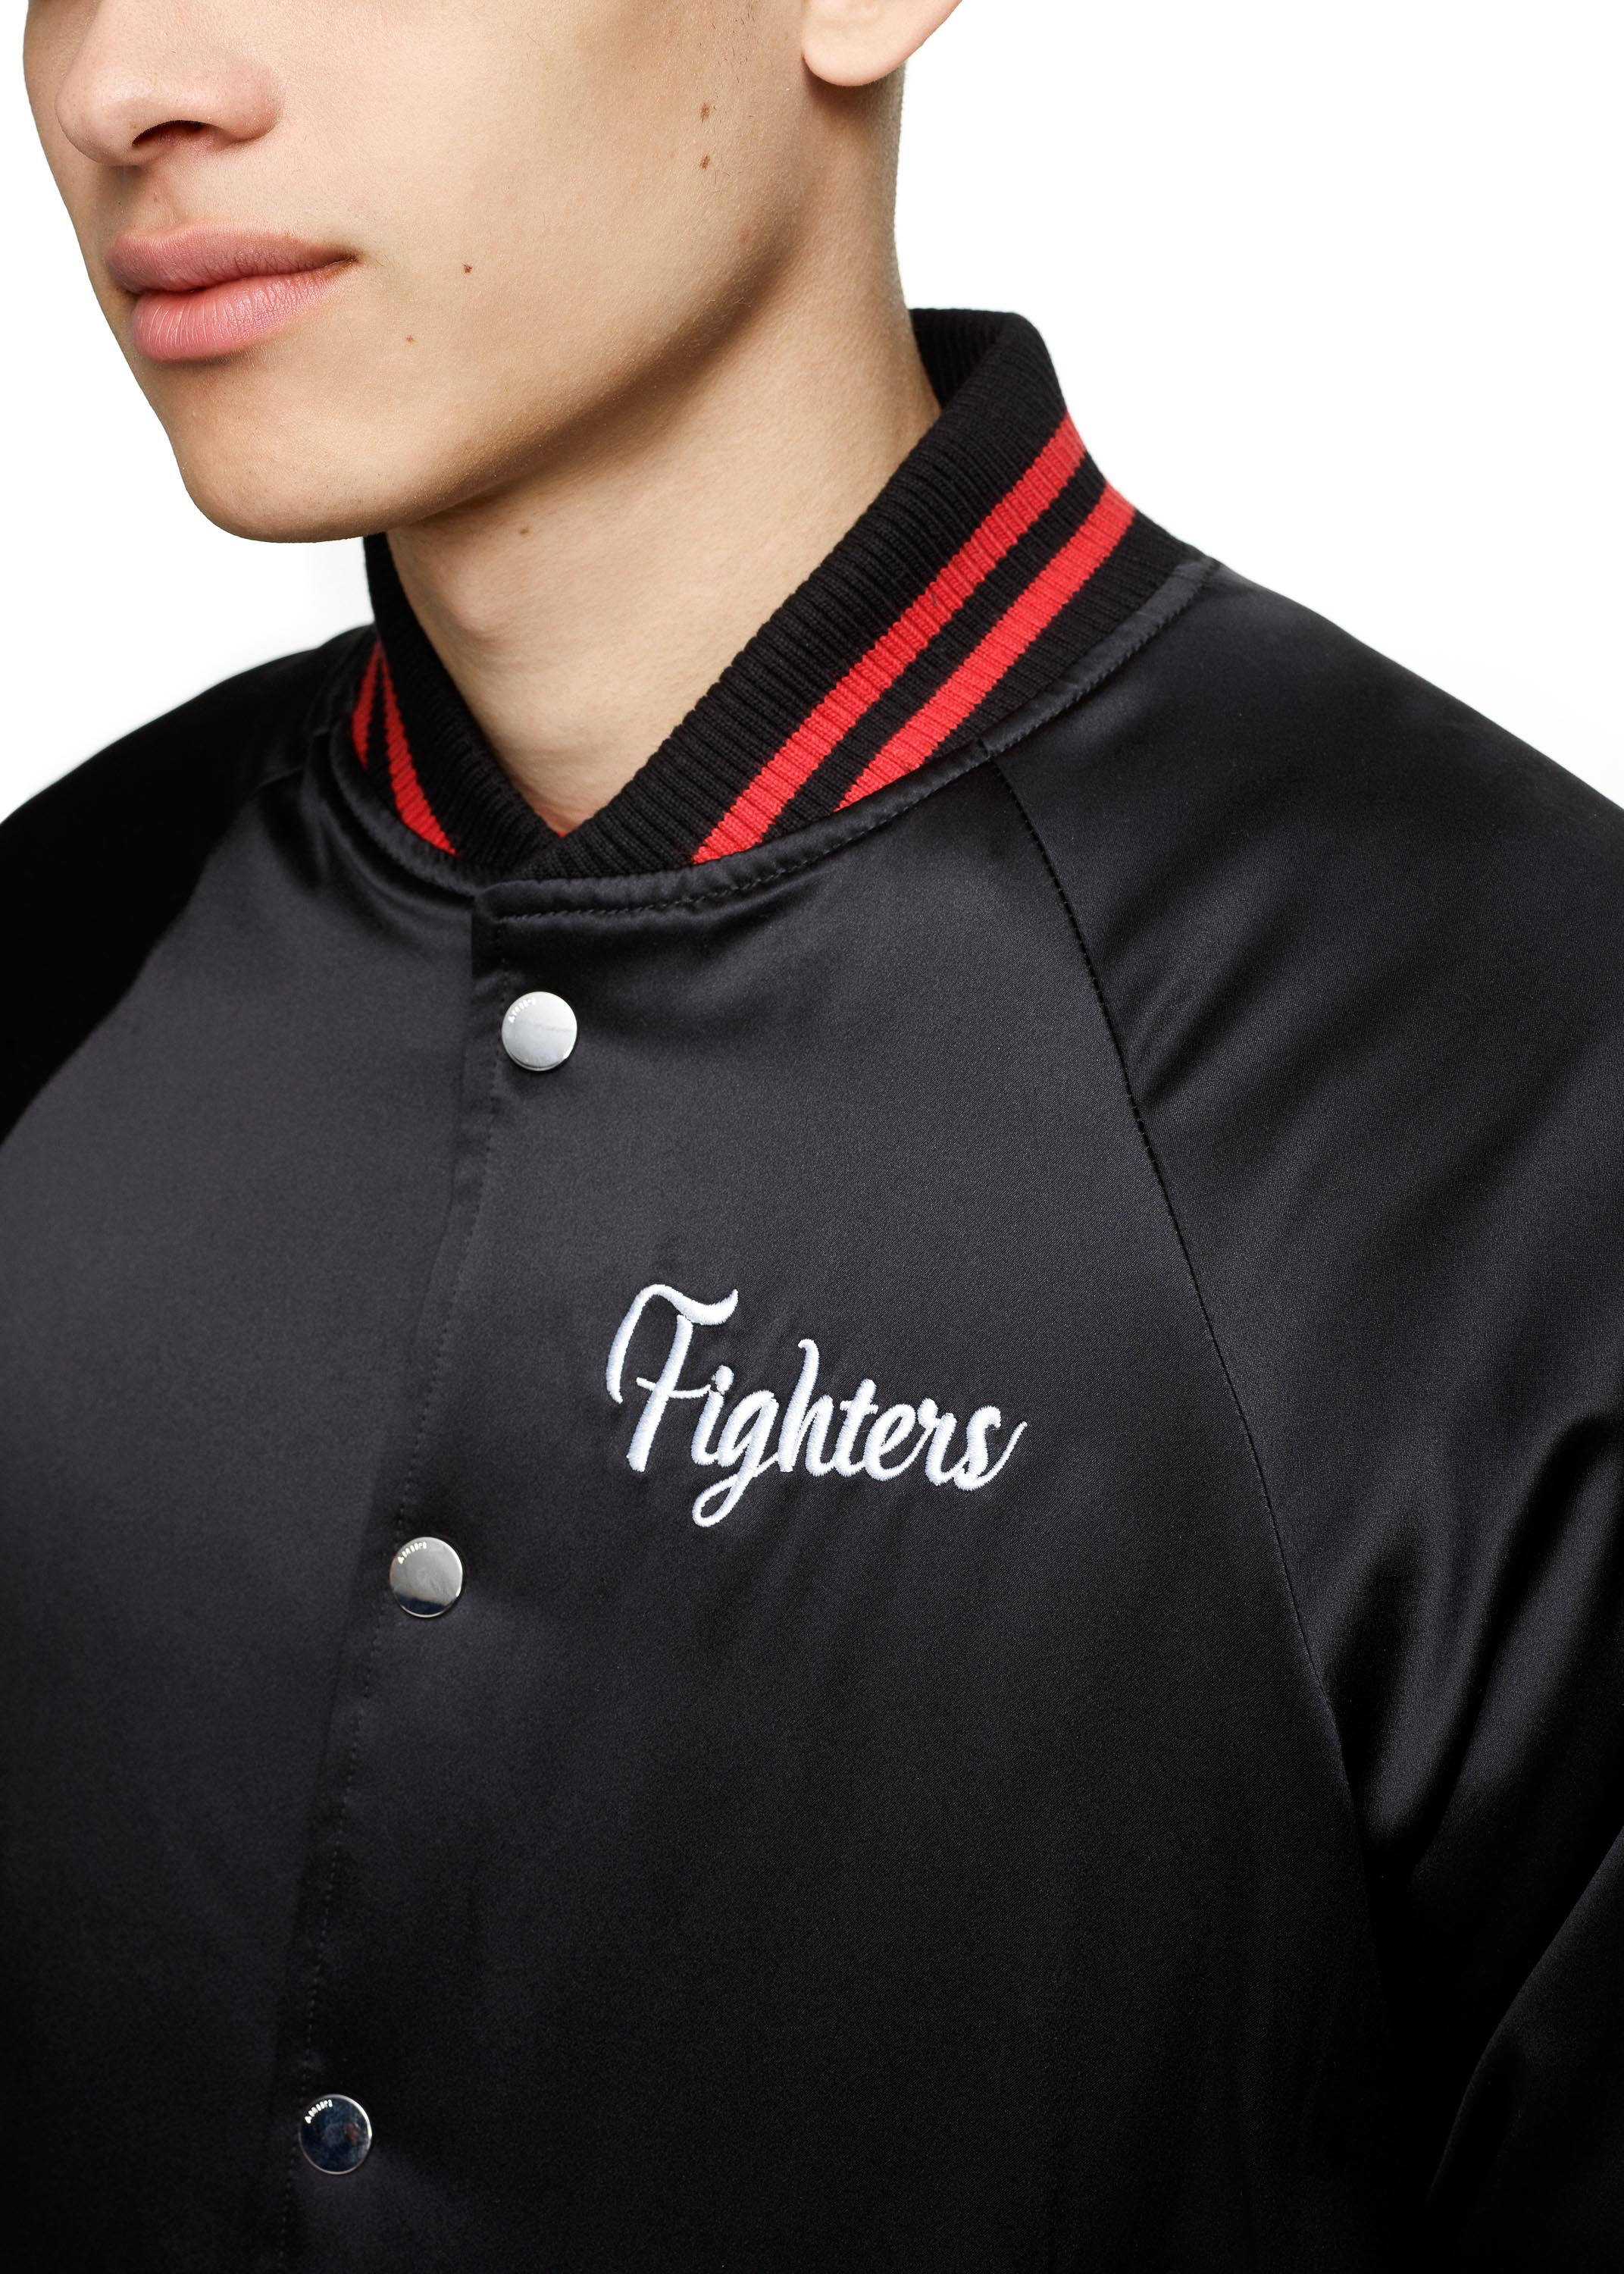 fighters-embroidered-baseball-jacket-black-red-image-4